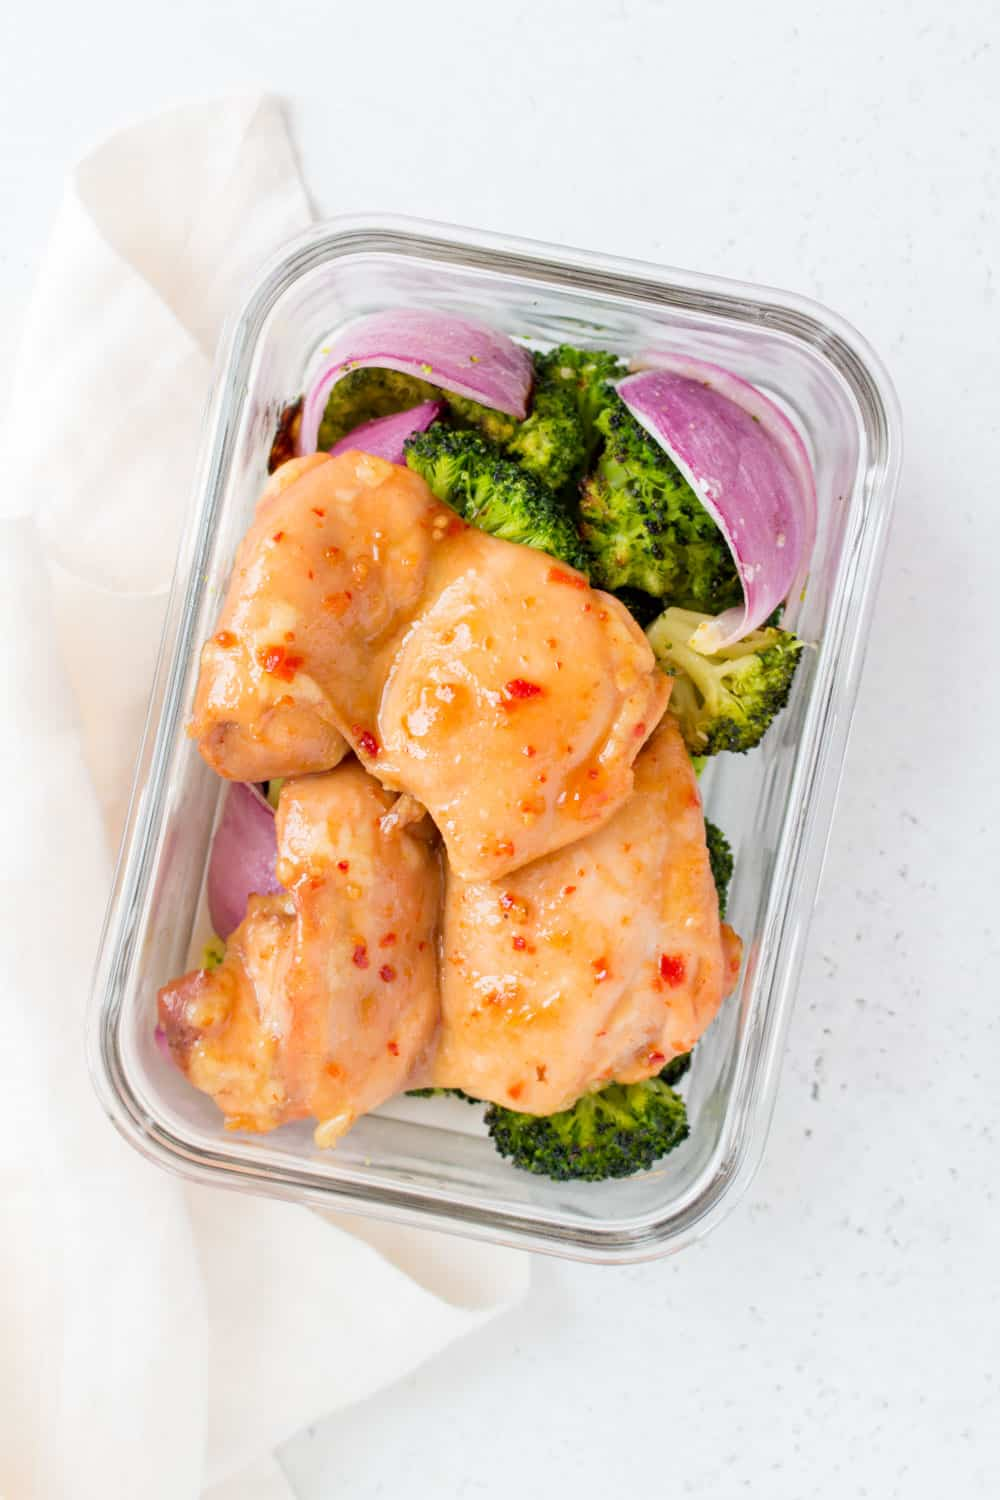 meal prep container with roasted broccoli, red onion, and oven baked chicken thighs with honey chili sauce